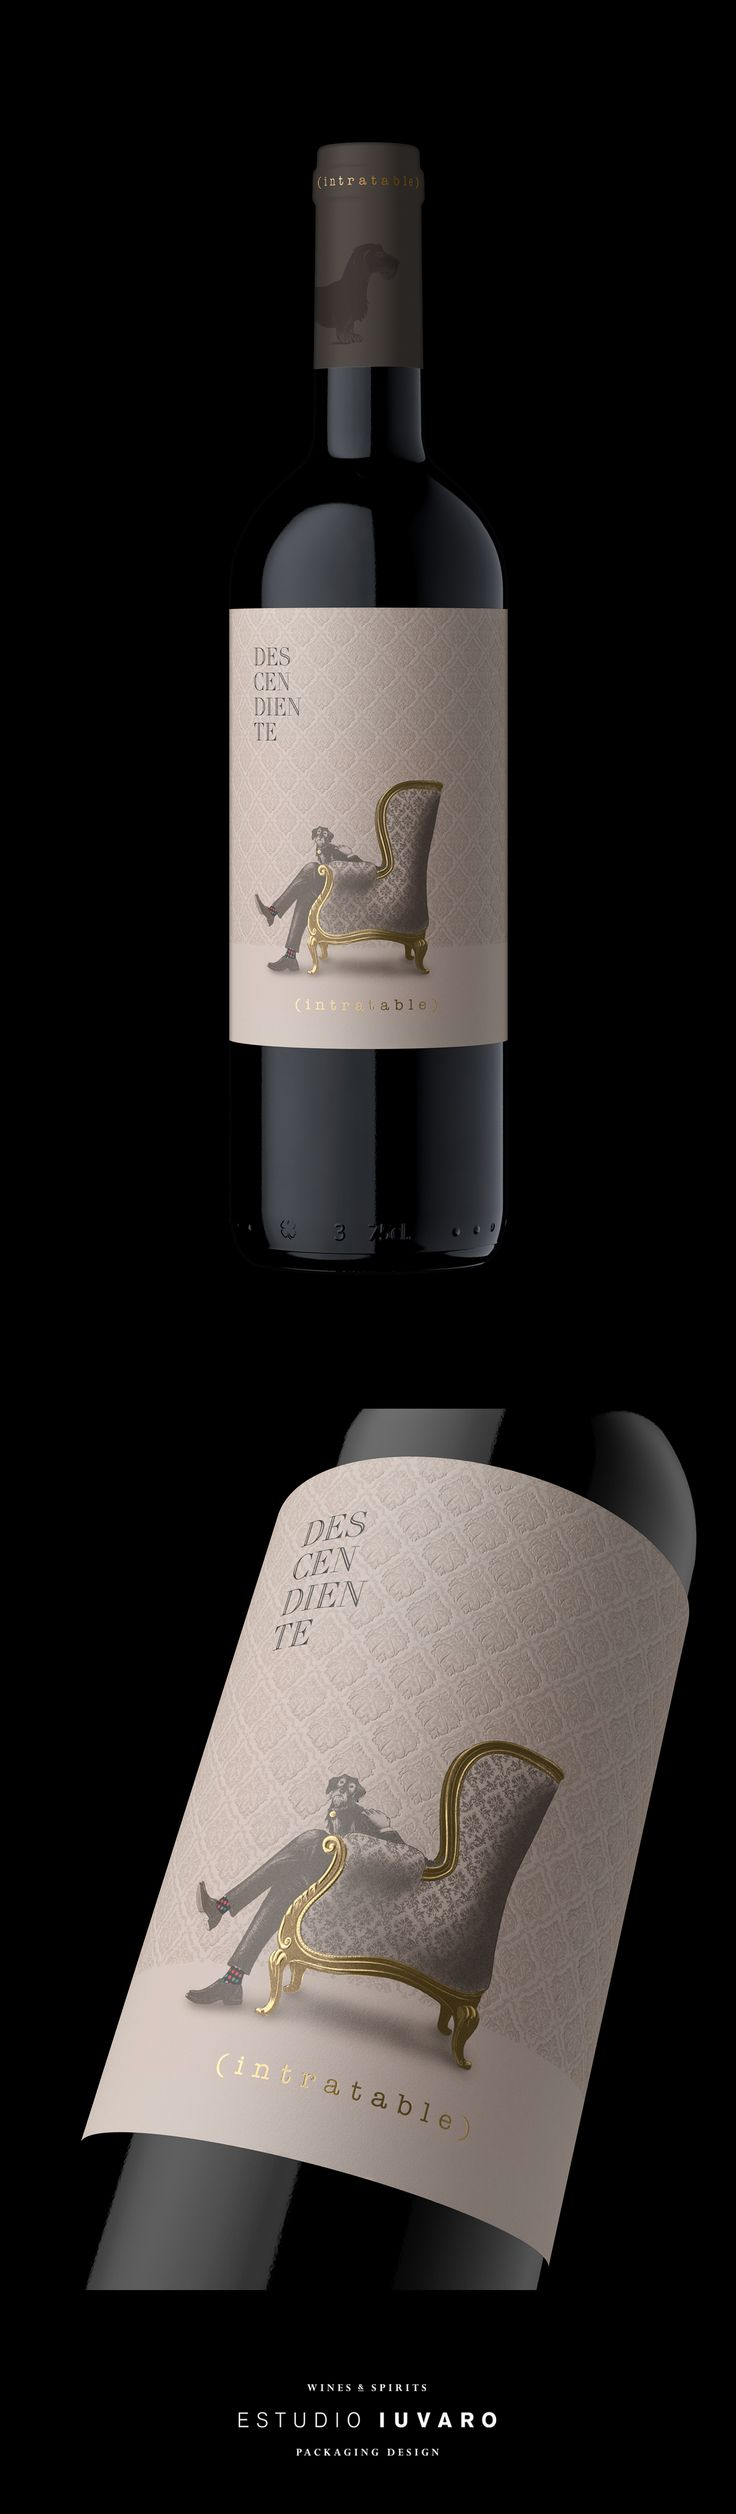 DESCENDIENTE INTRATABLE Terracota Wineland on Behance